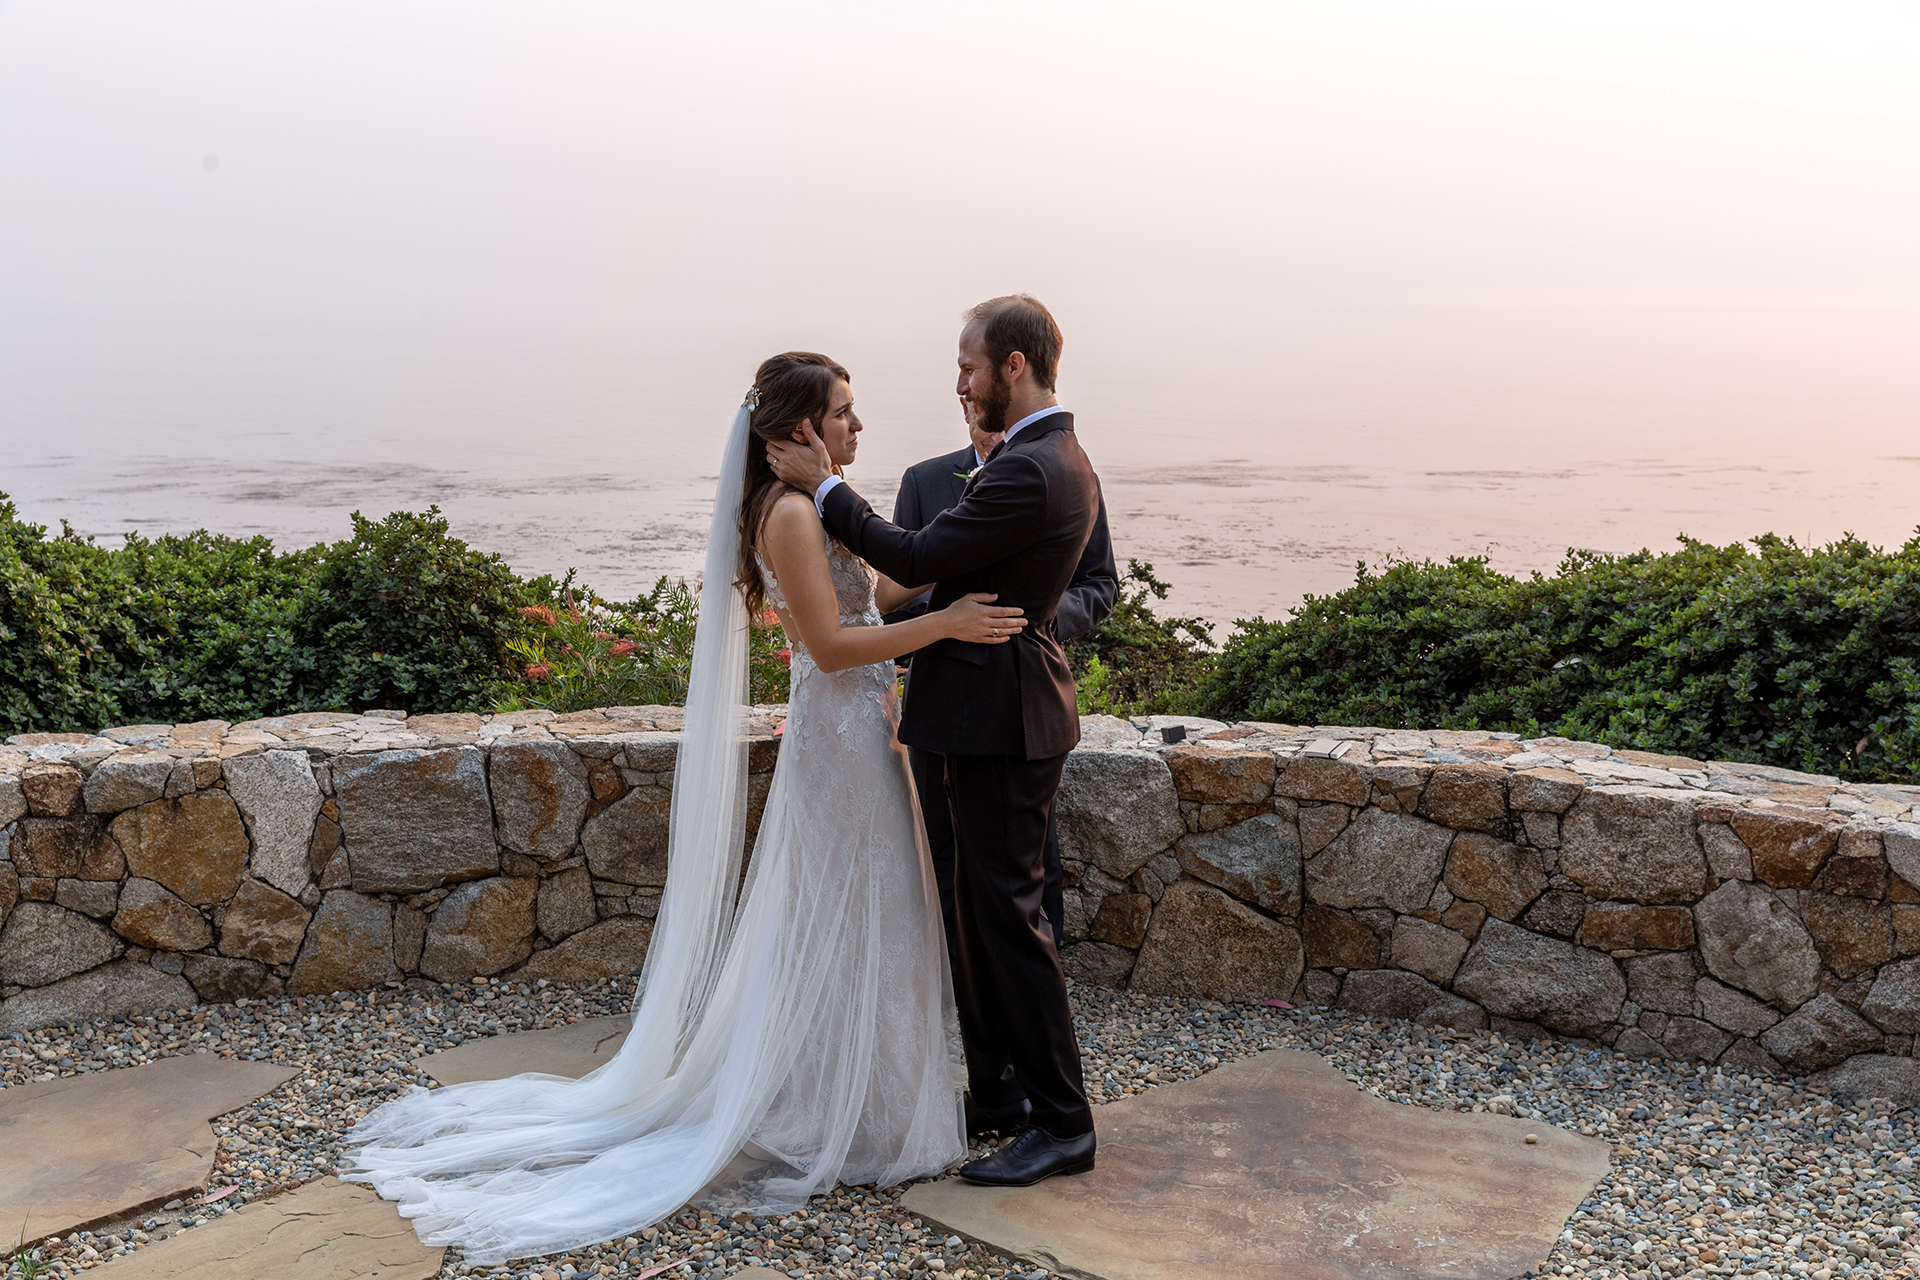 Destination Wedding Images from Big Sur, CA | The groom pauses for a brief second in order to soak up the moment